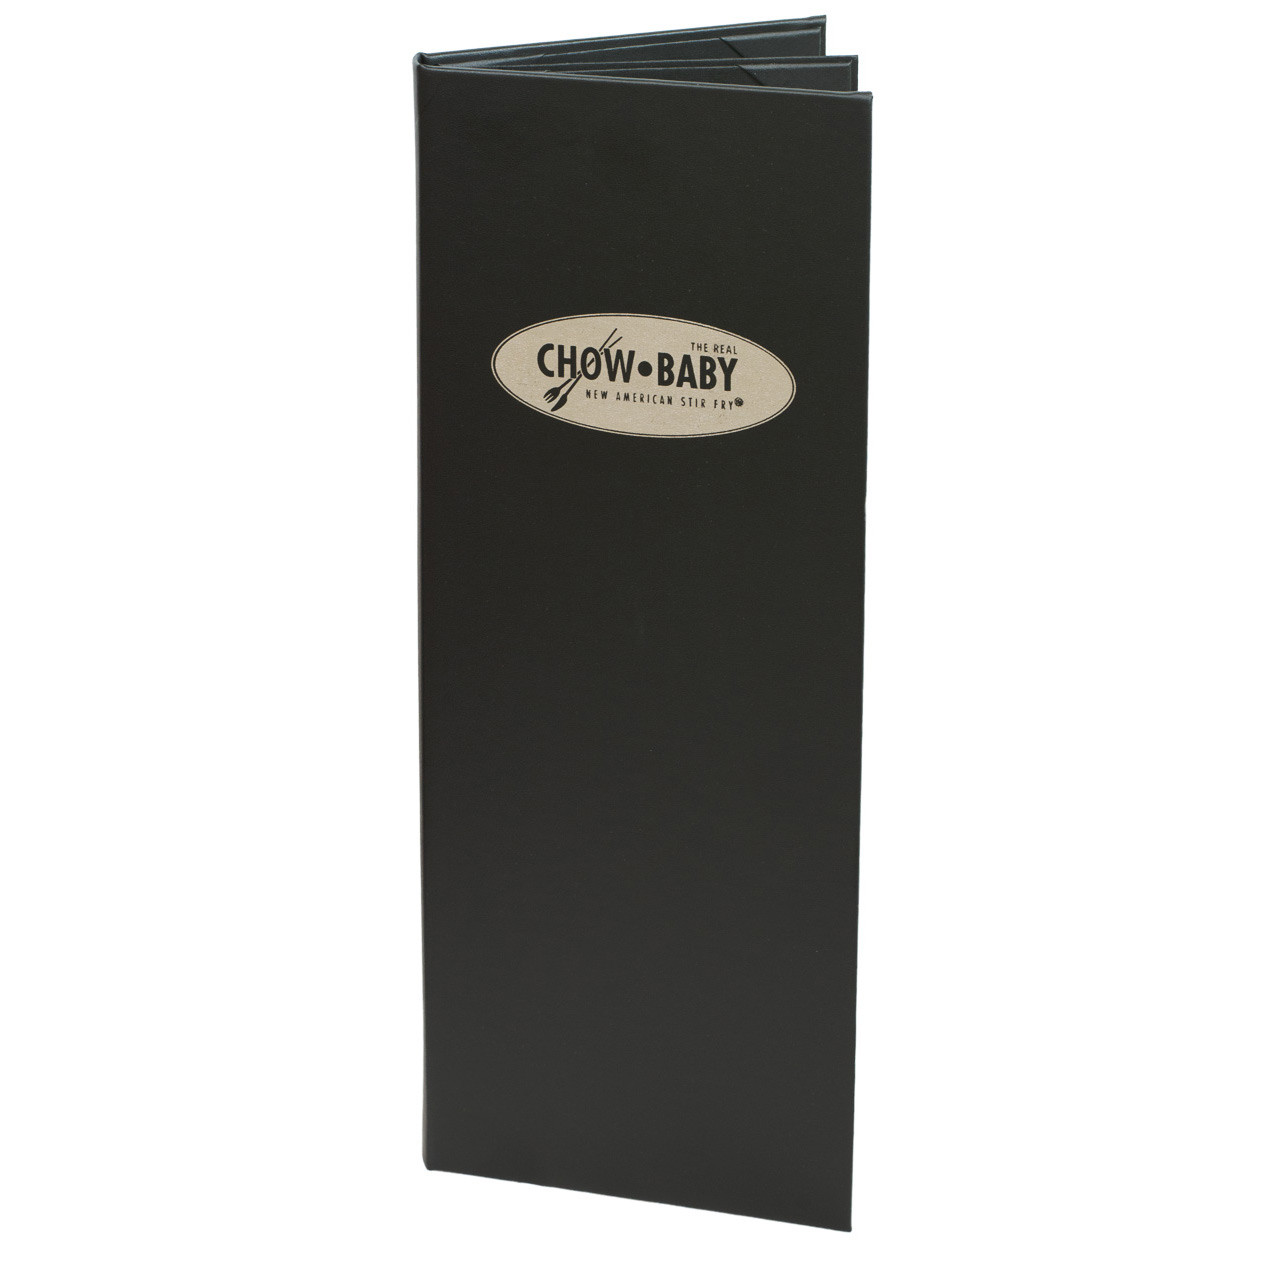 "4 1/4"" x 14"" Insert Menu Cover 2-panel, 6-view chocolate. Produced for Chow Baby"